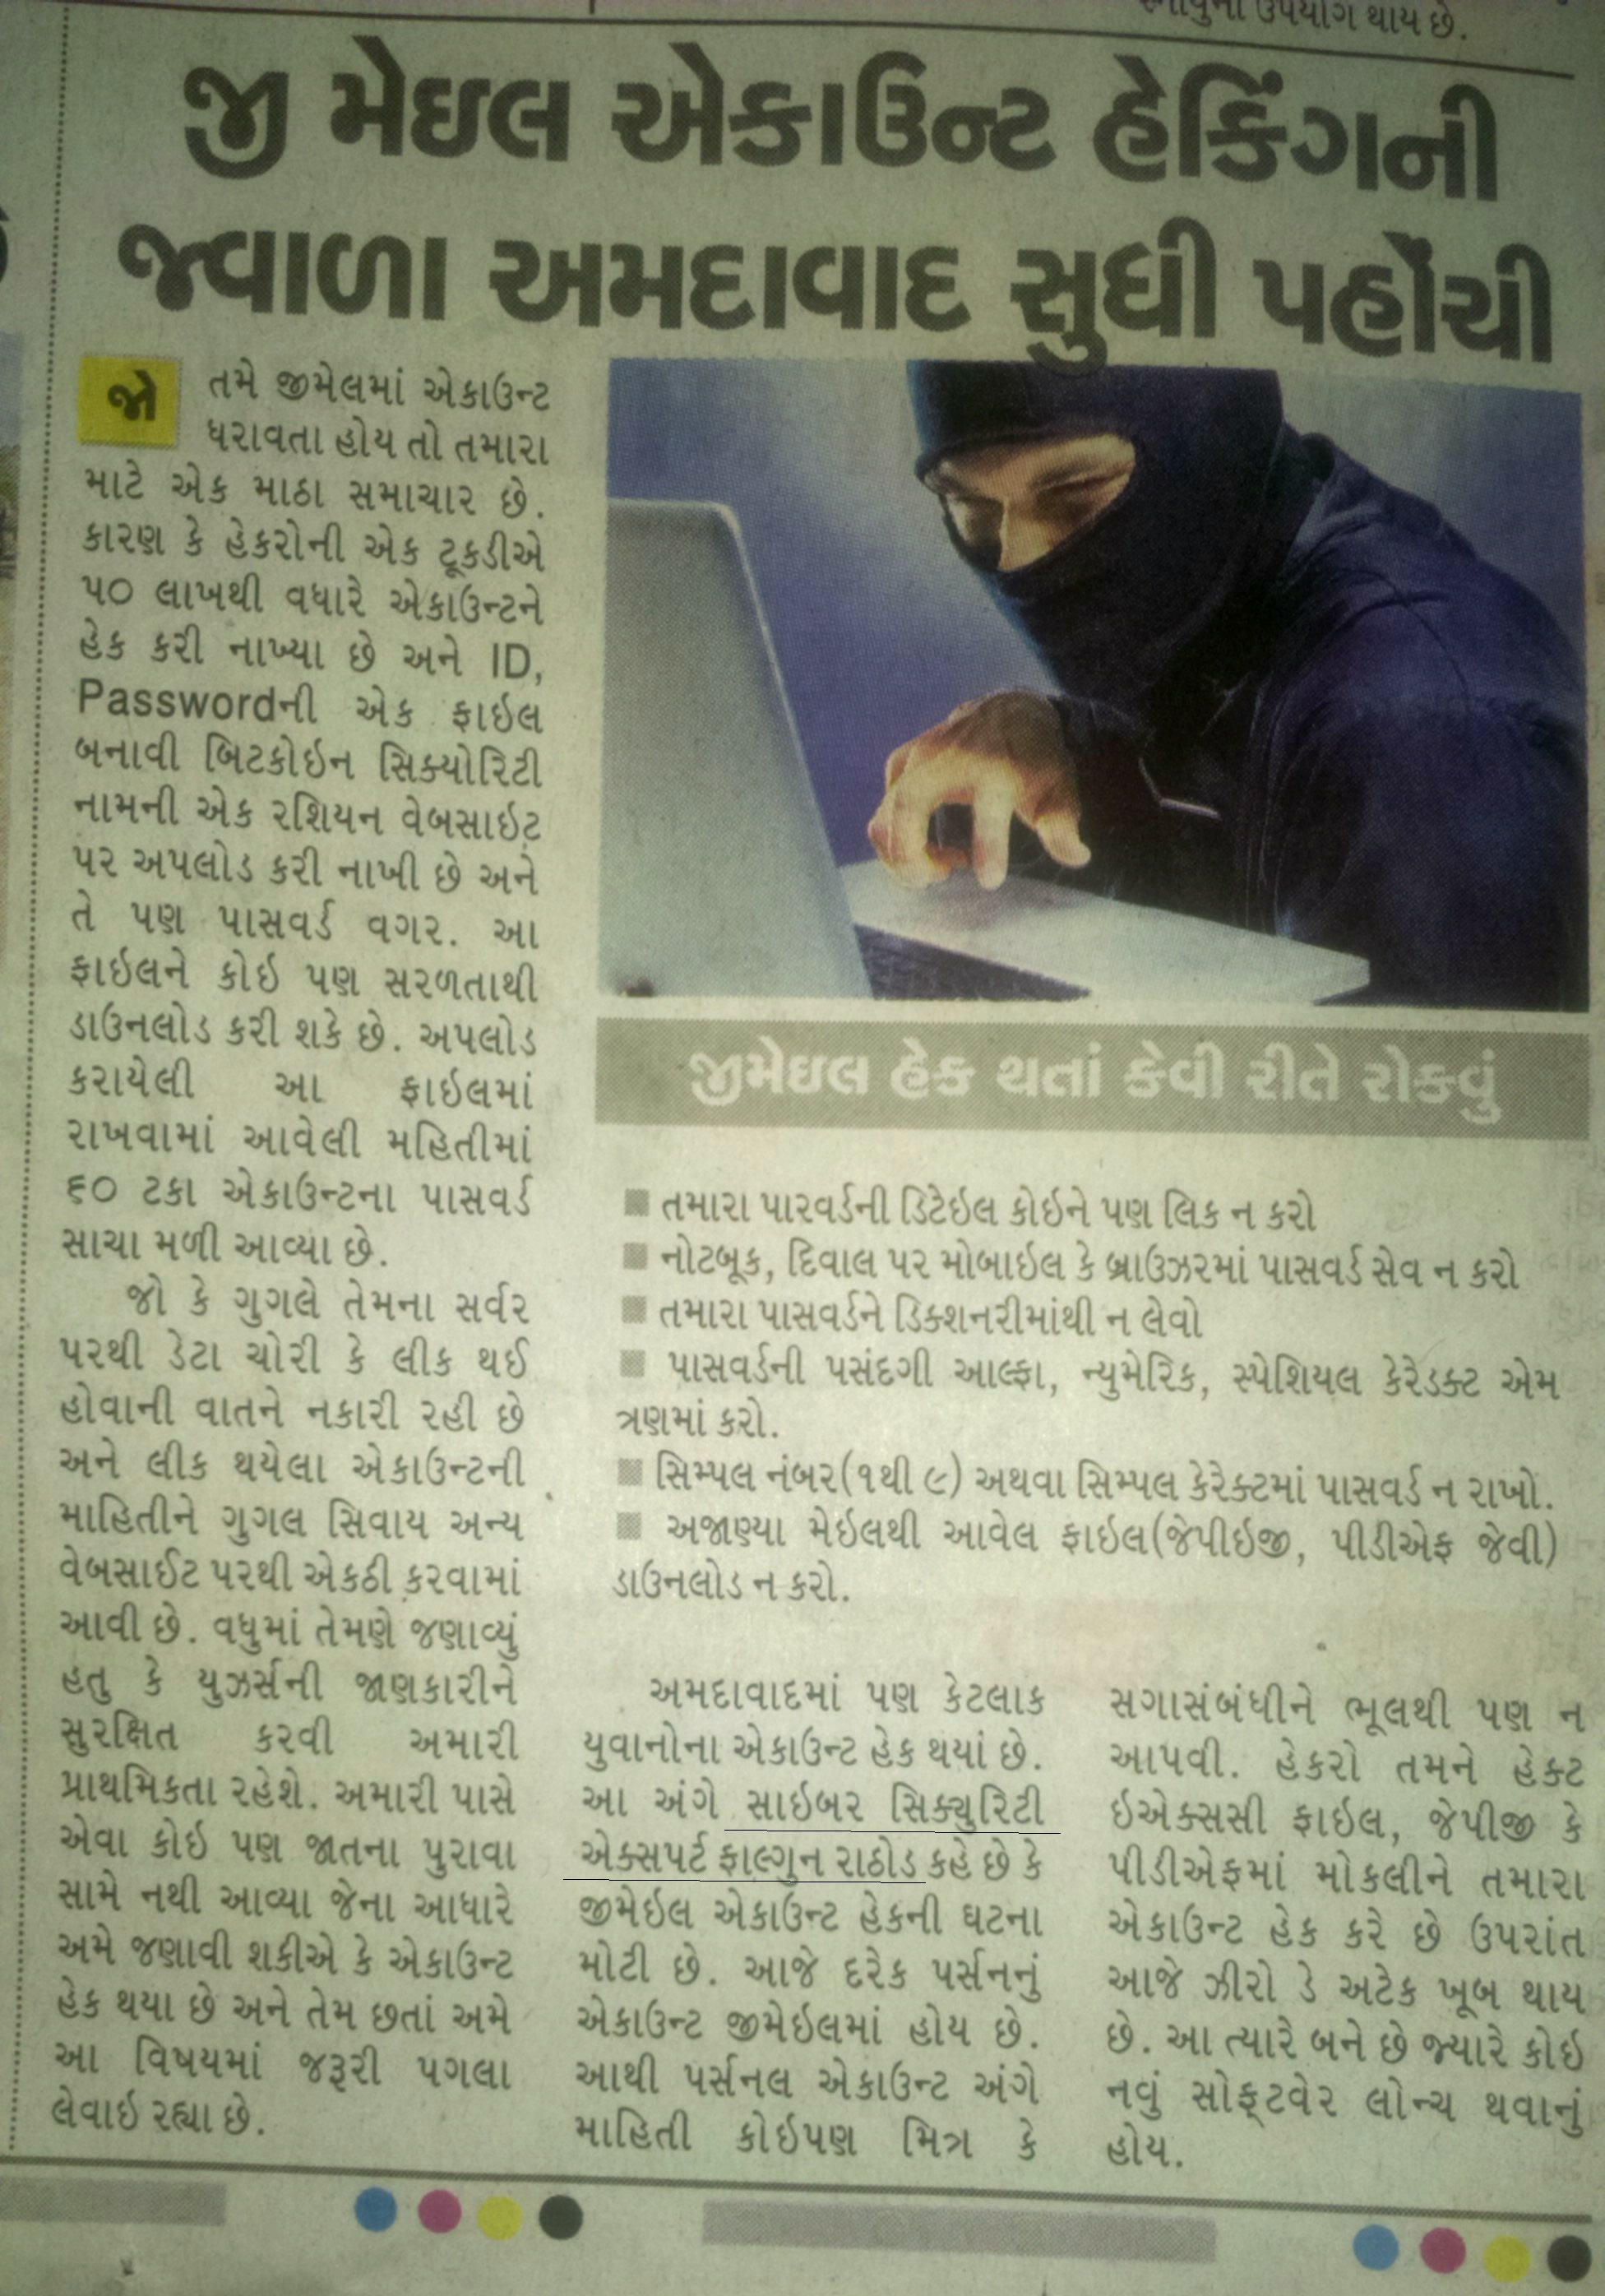 Falgun Rathod India's Top Cyber Security Expert Ahmedabad